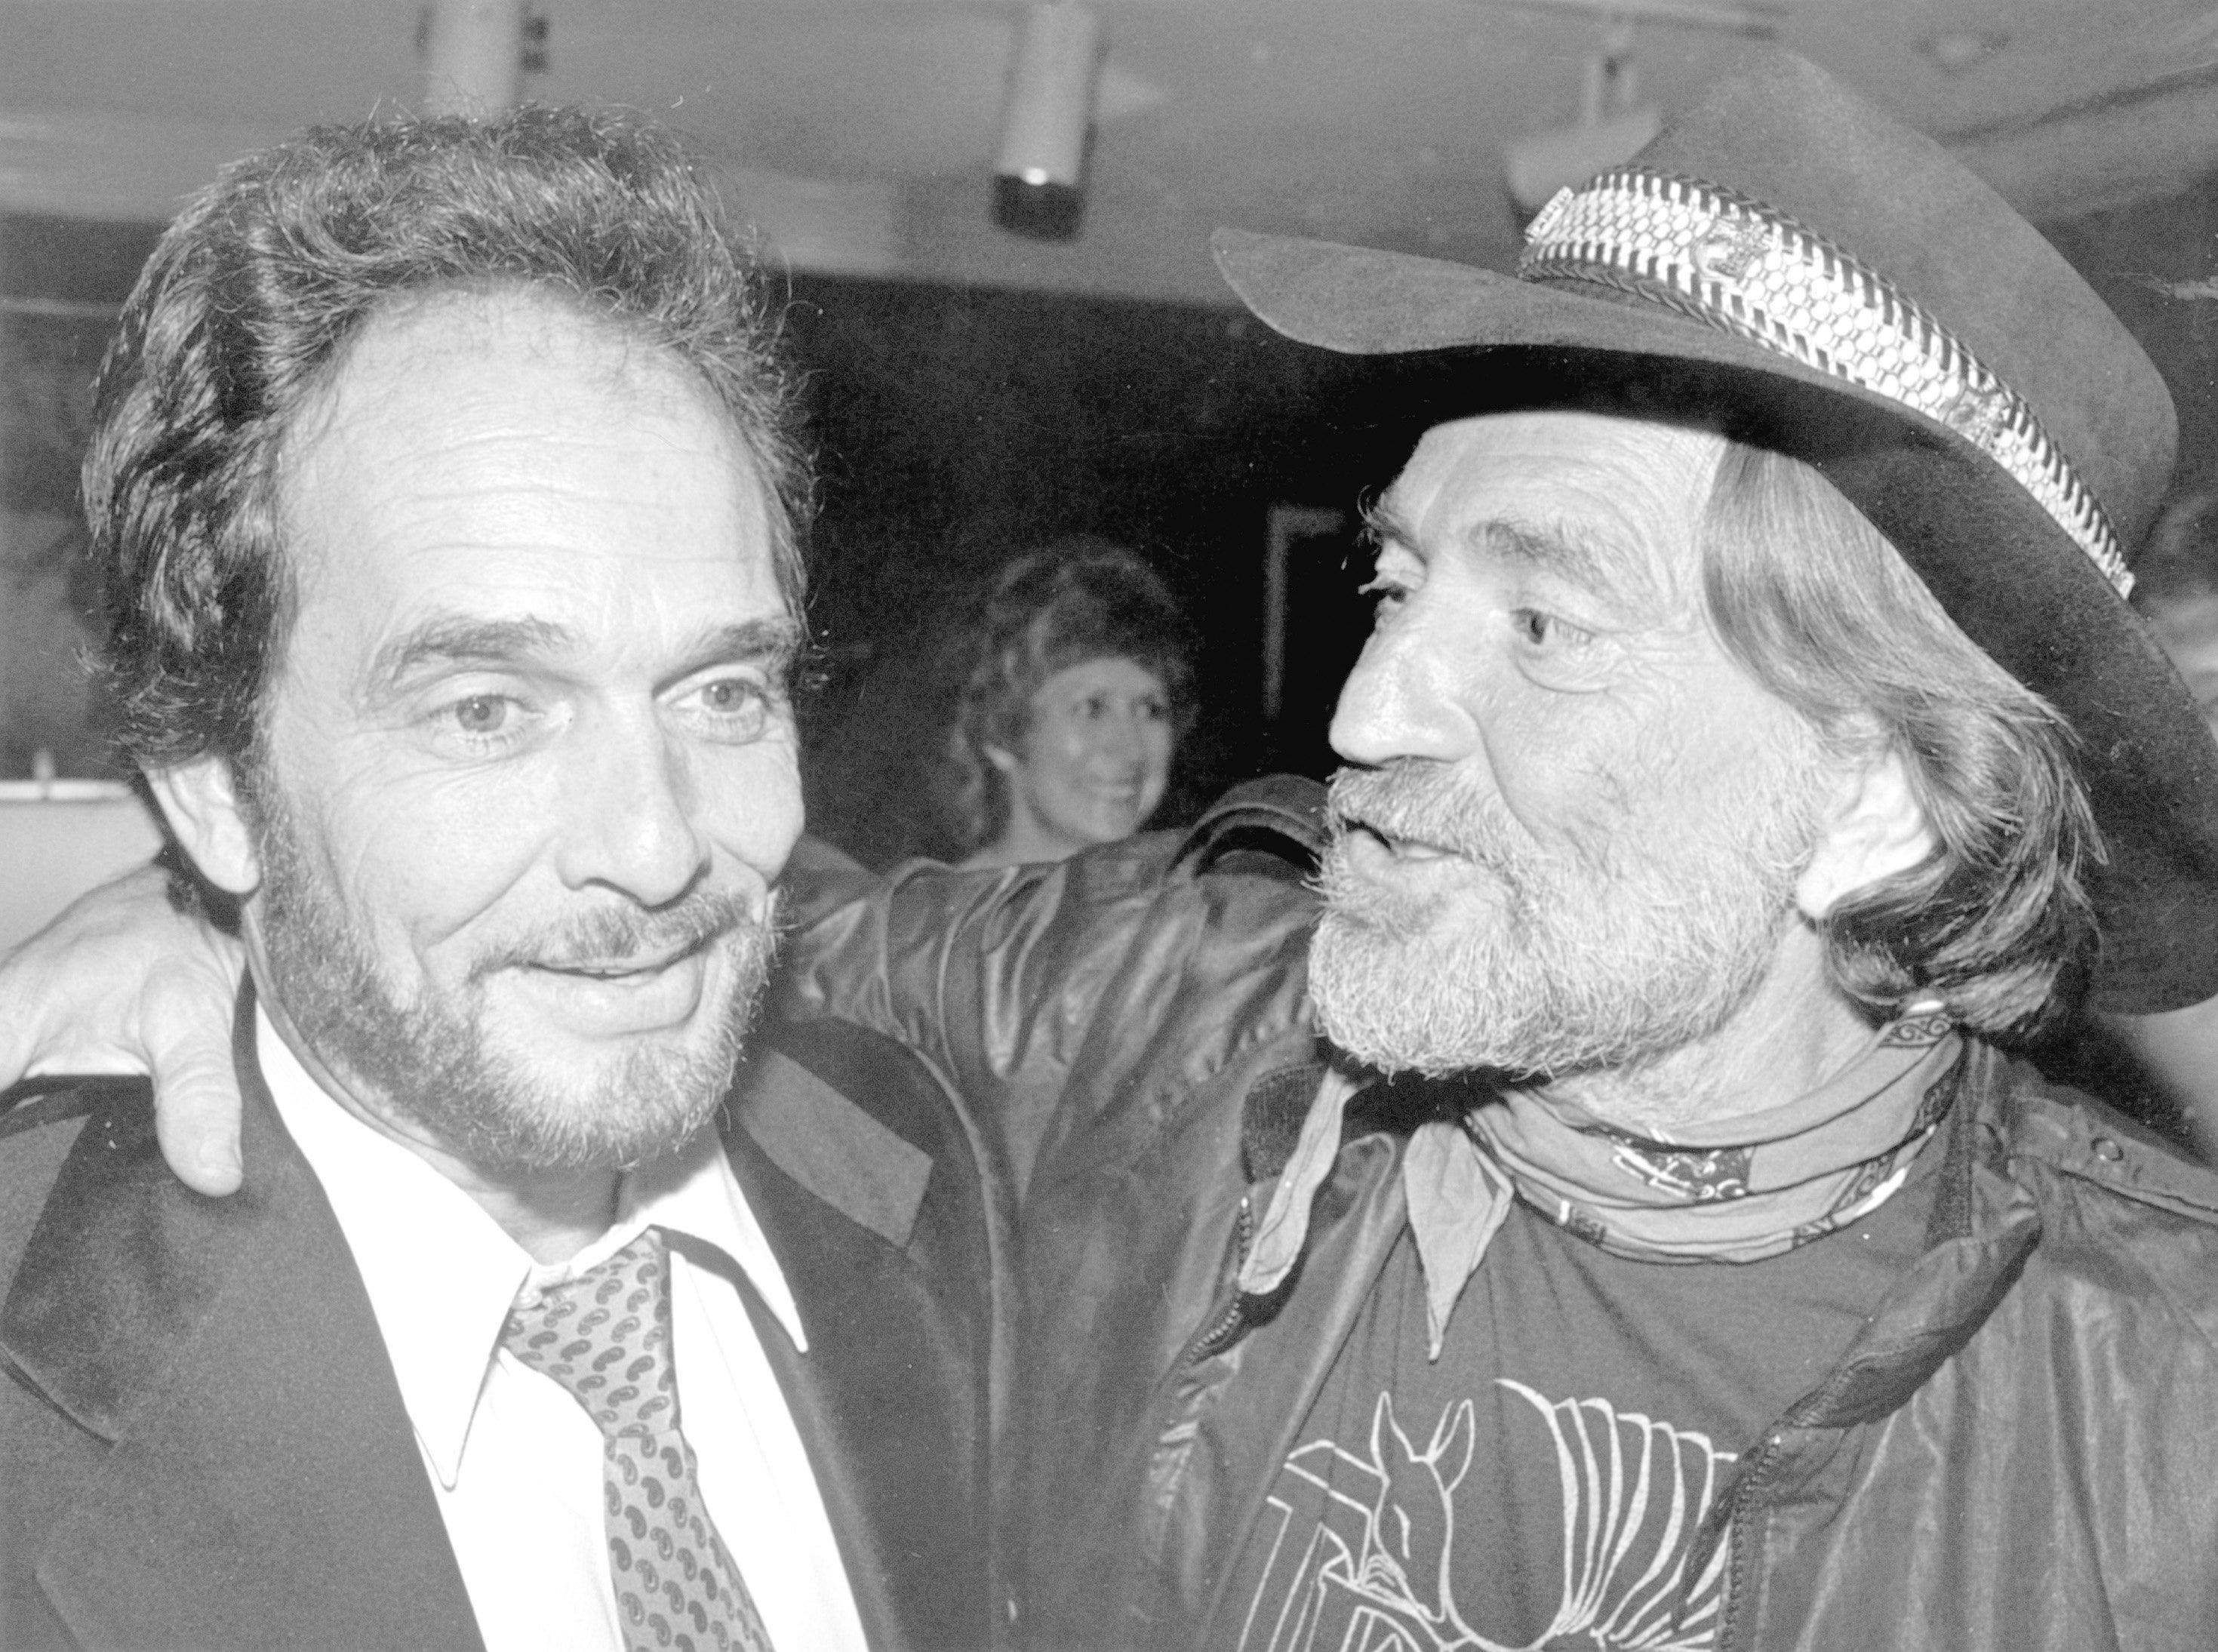 Merle Haggard, left, and Willie Nelson attend the BMI awards dinner in Nashville in October 1981.